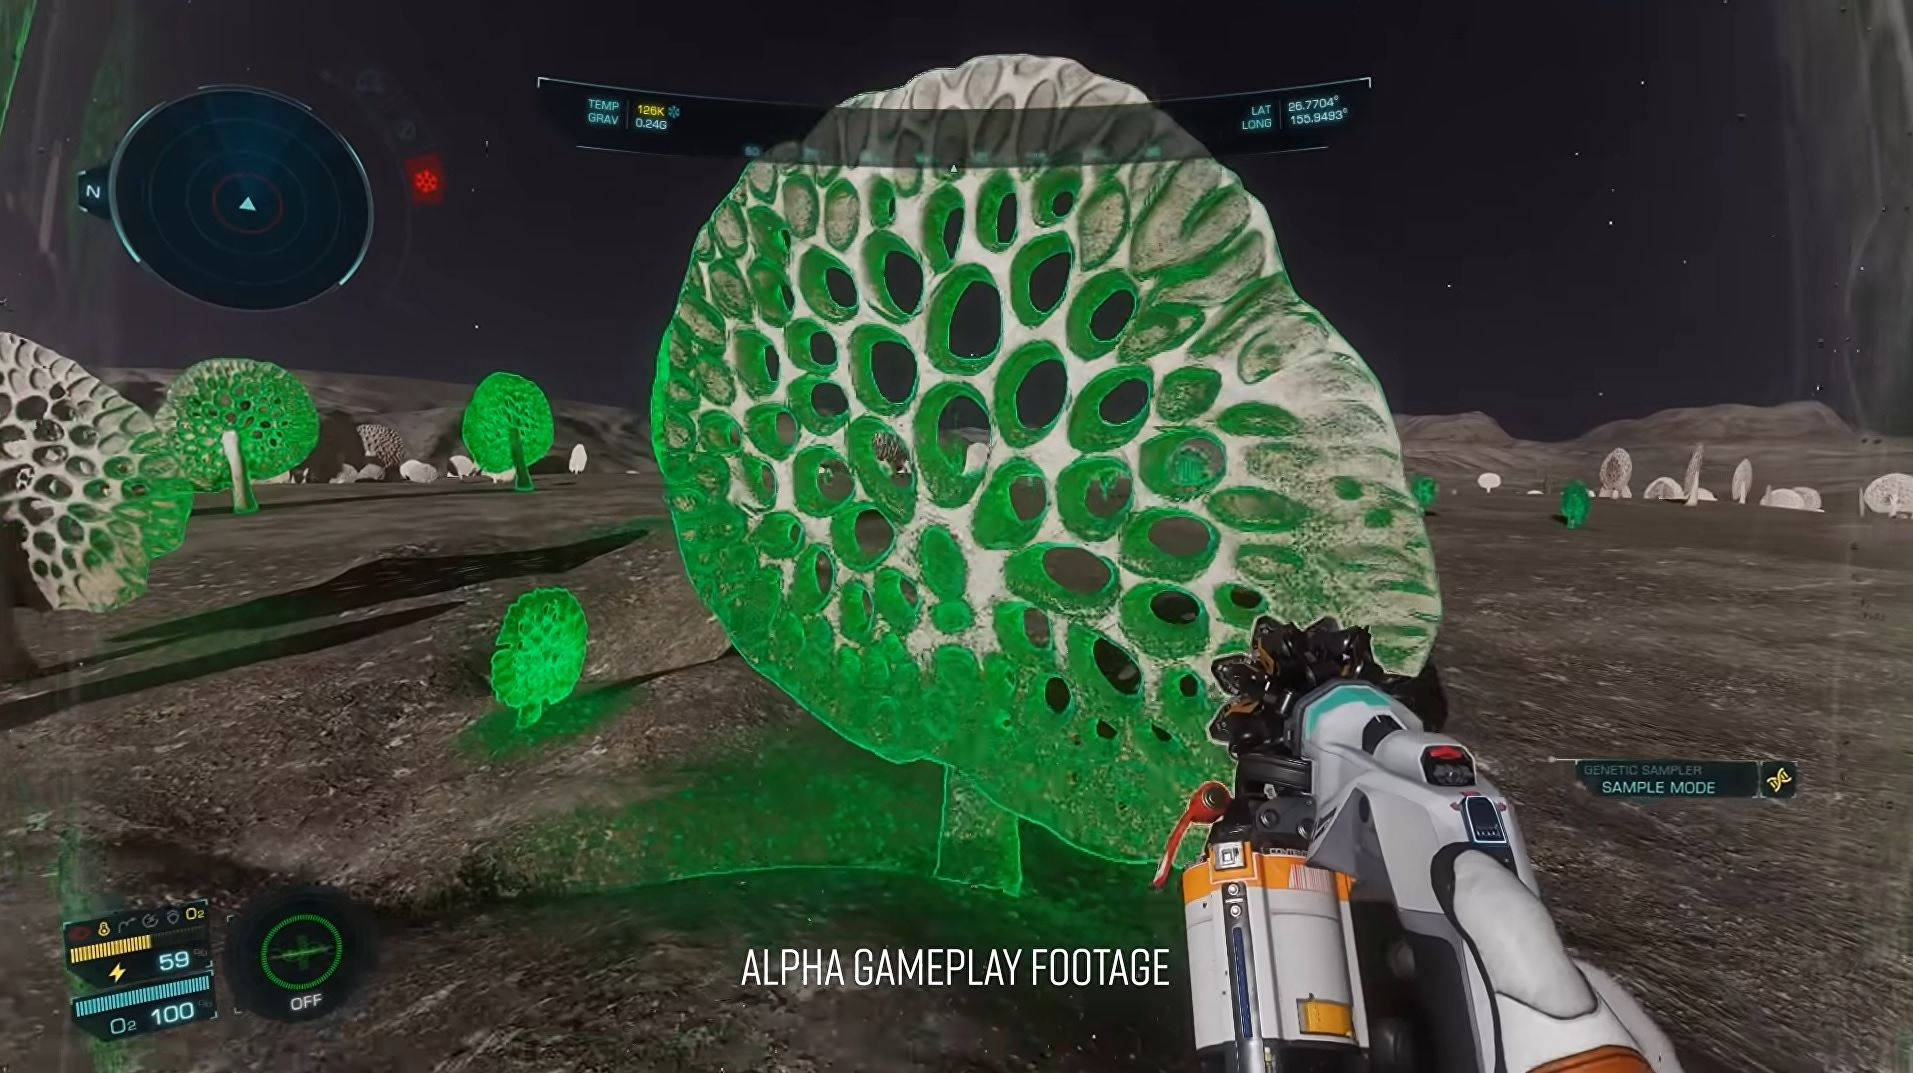 Elite Dangerous: Odyssey is now letting alpha players scan space plants